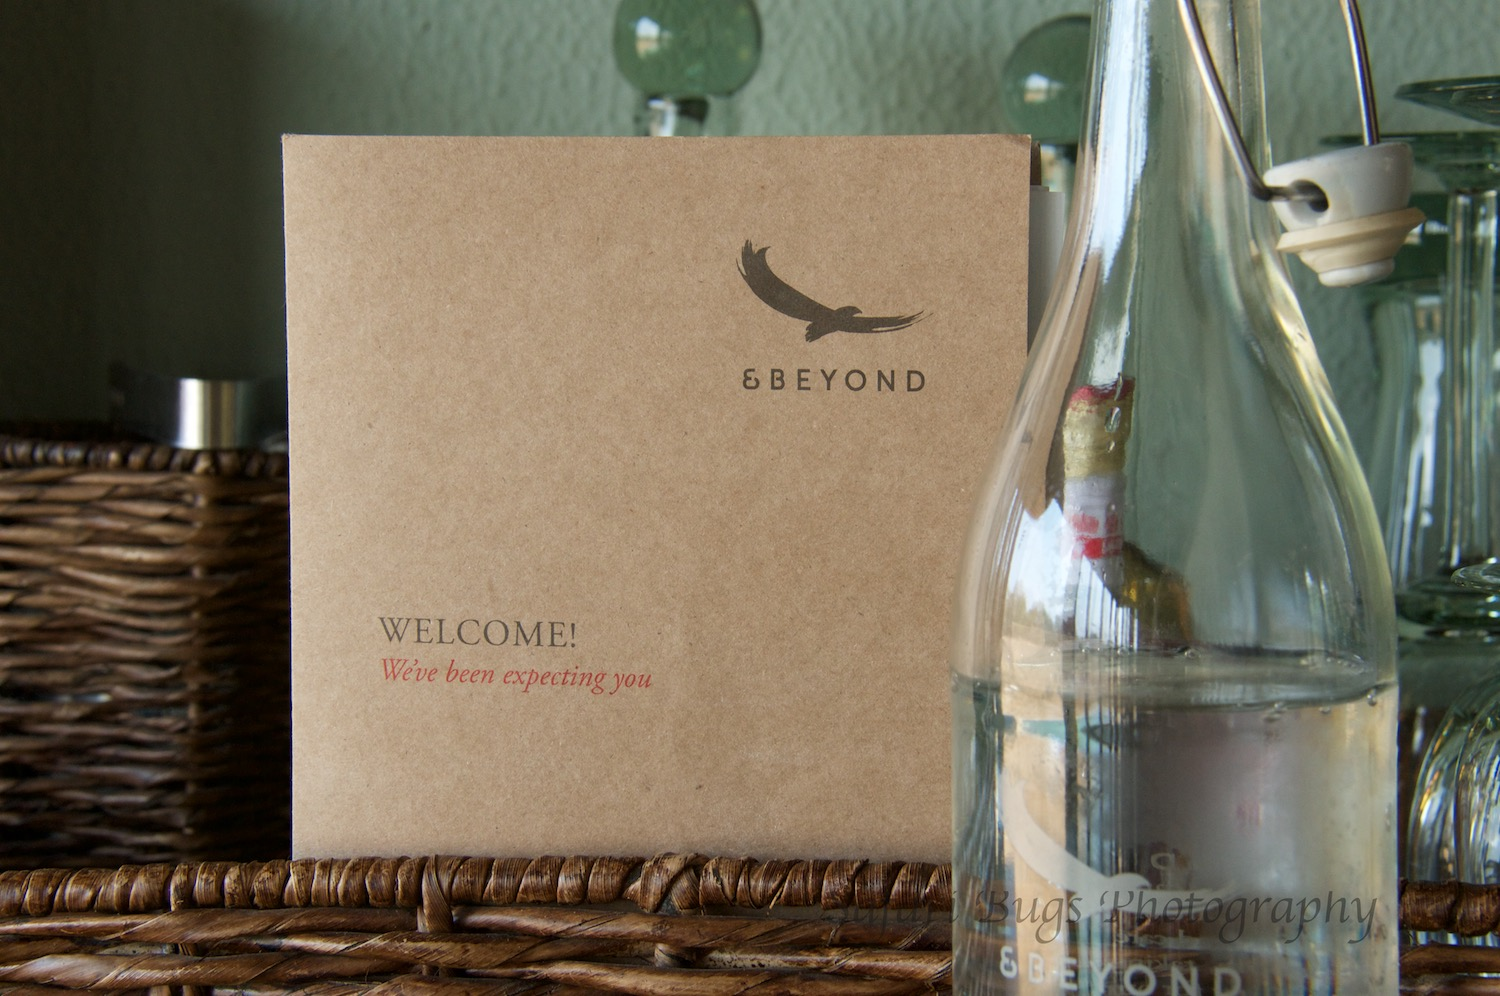 Our welcome package.